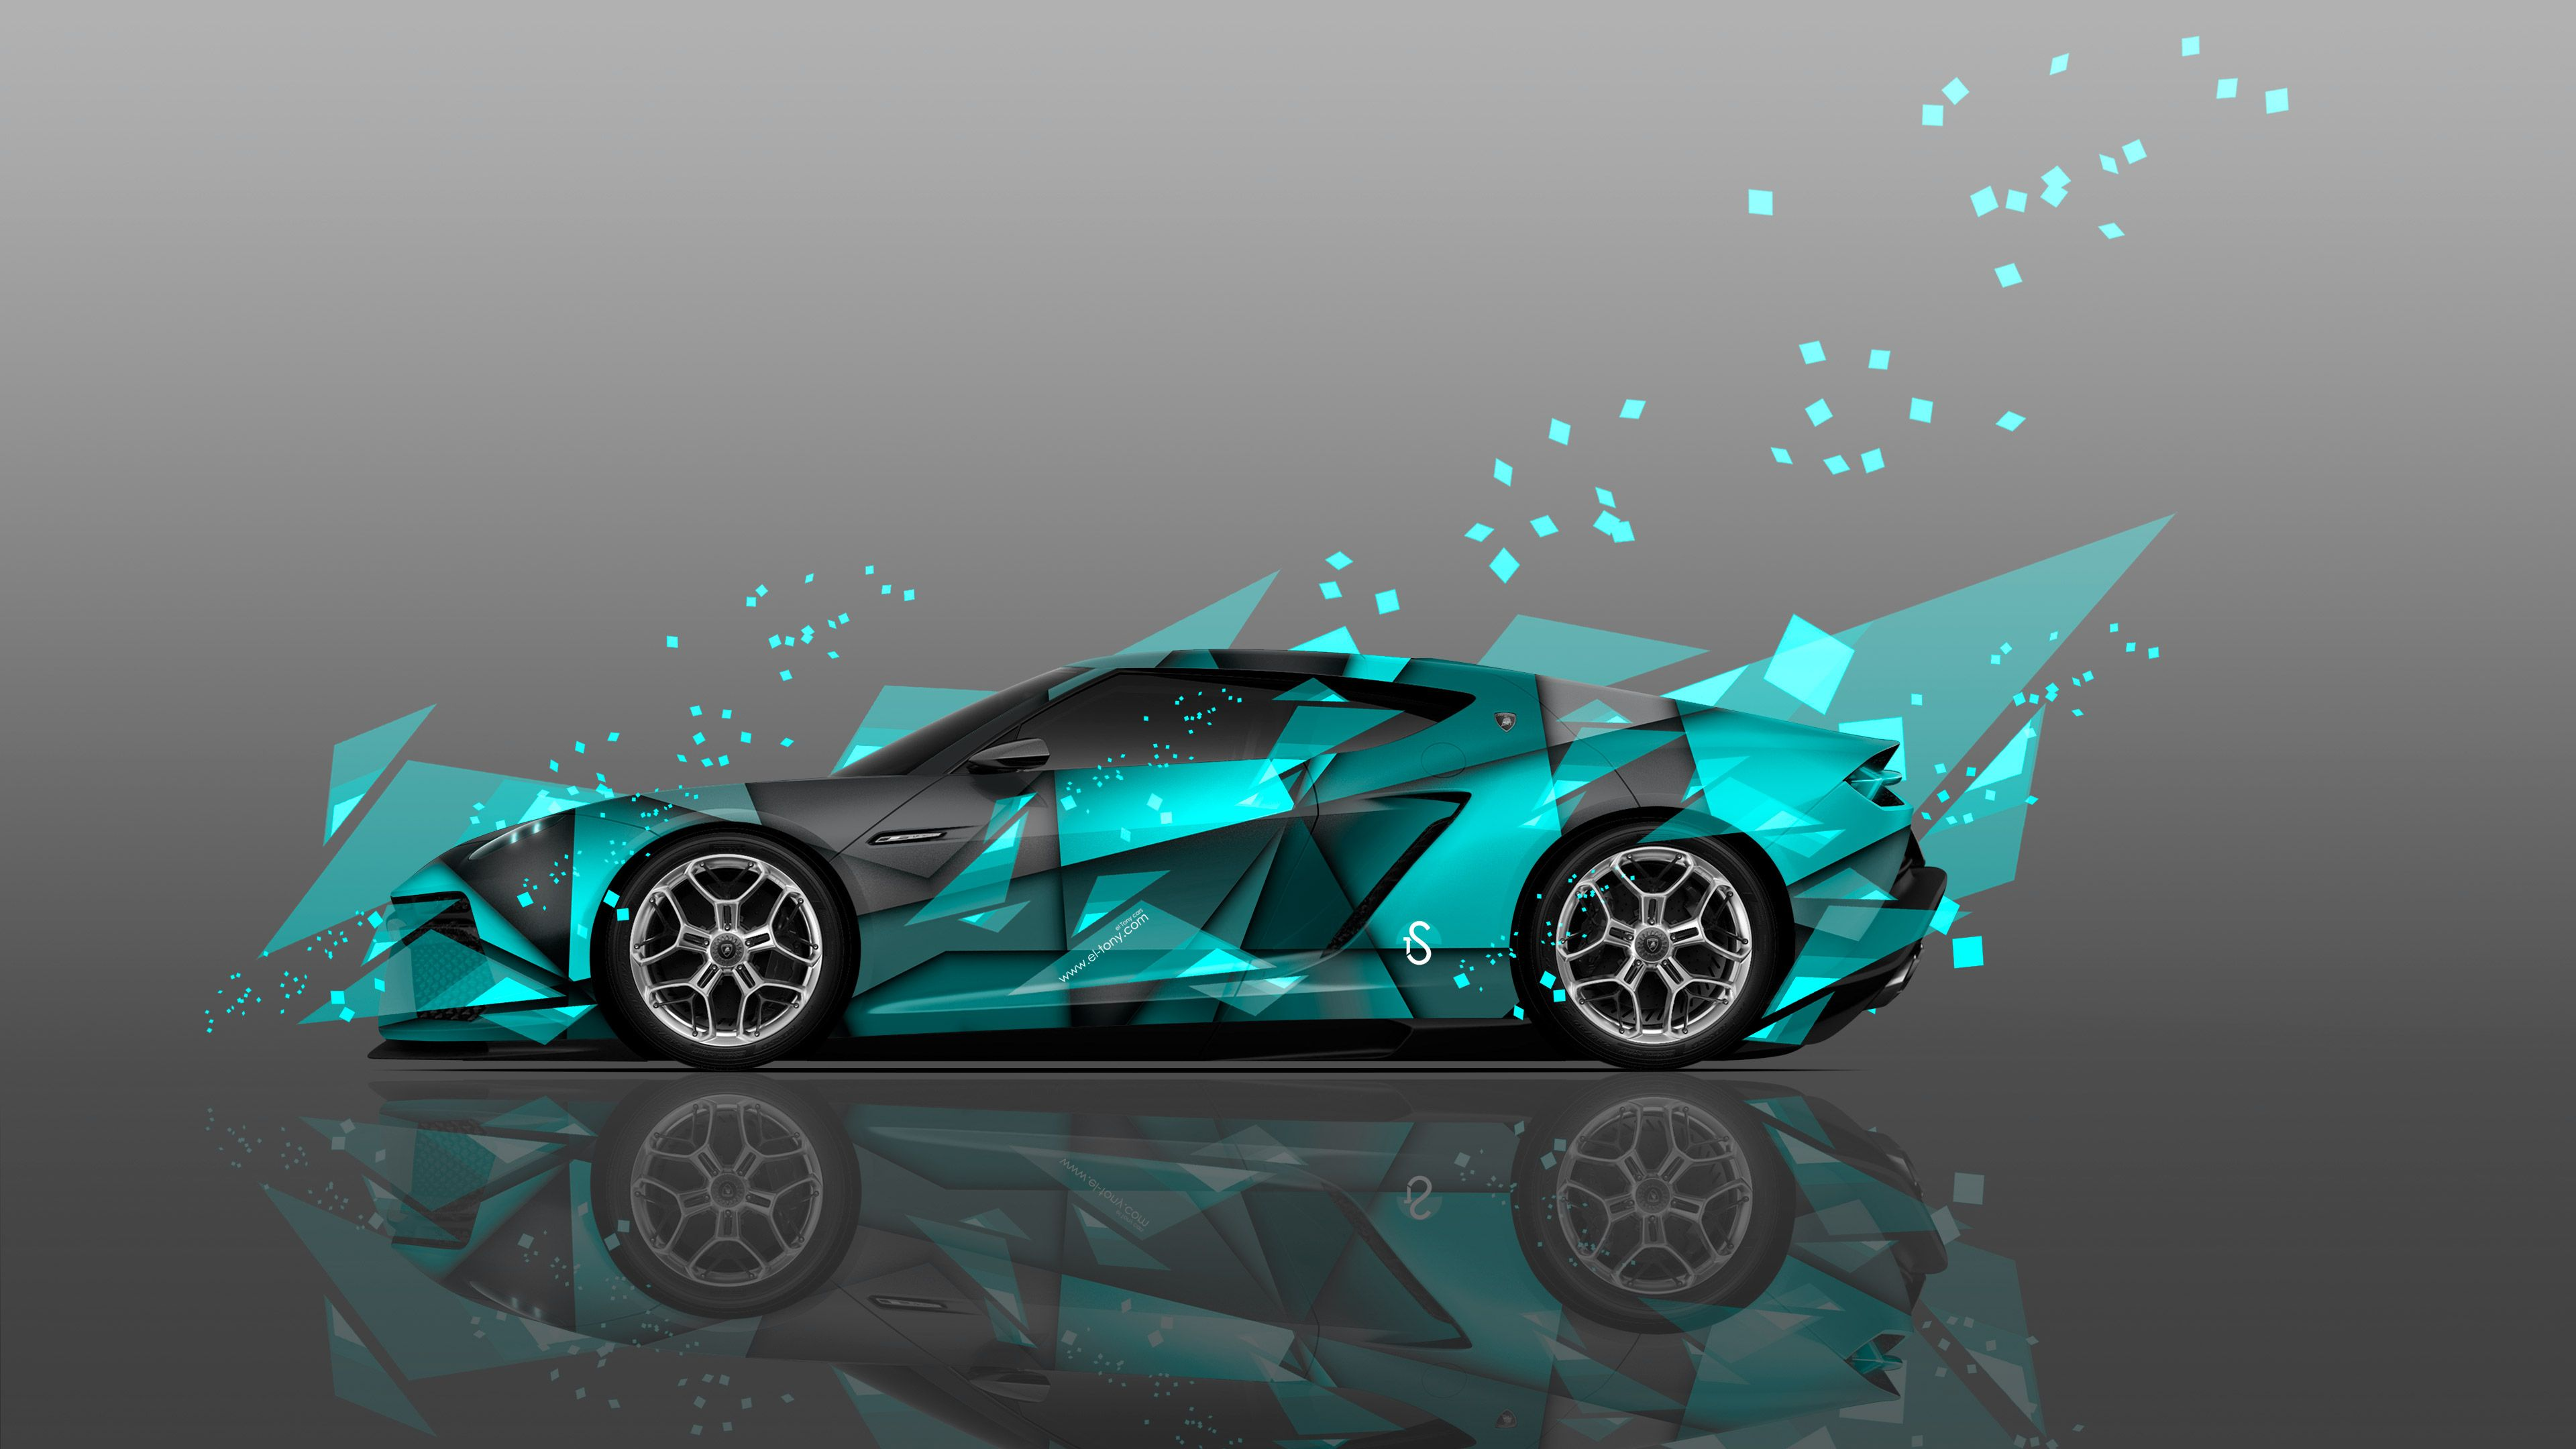 Charmant Lamborghini Asterion Side Abstract Aerography Car Design By Tony